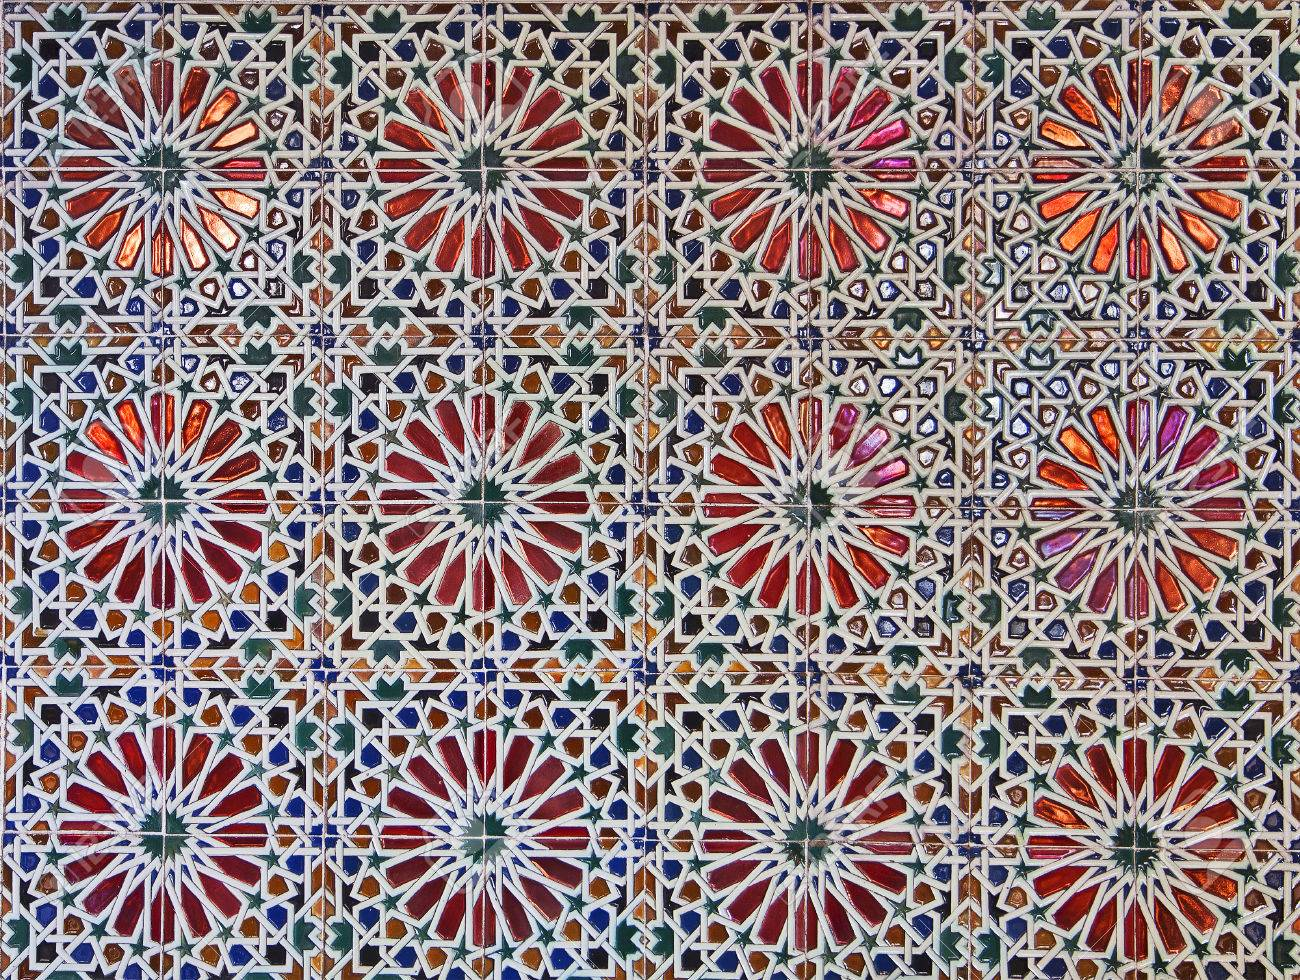 Pattern of ancient italian ceramics tiles with glazed surface pattern of ancient italian ceramics tiles with glazed surface stock photo 31405045 dailygadgetfo Images